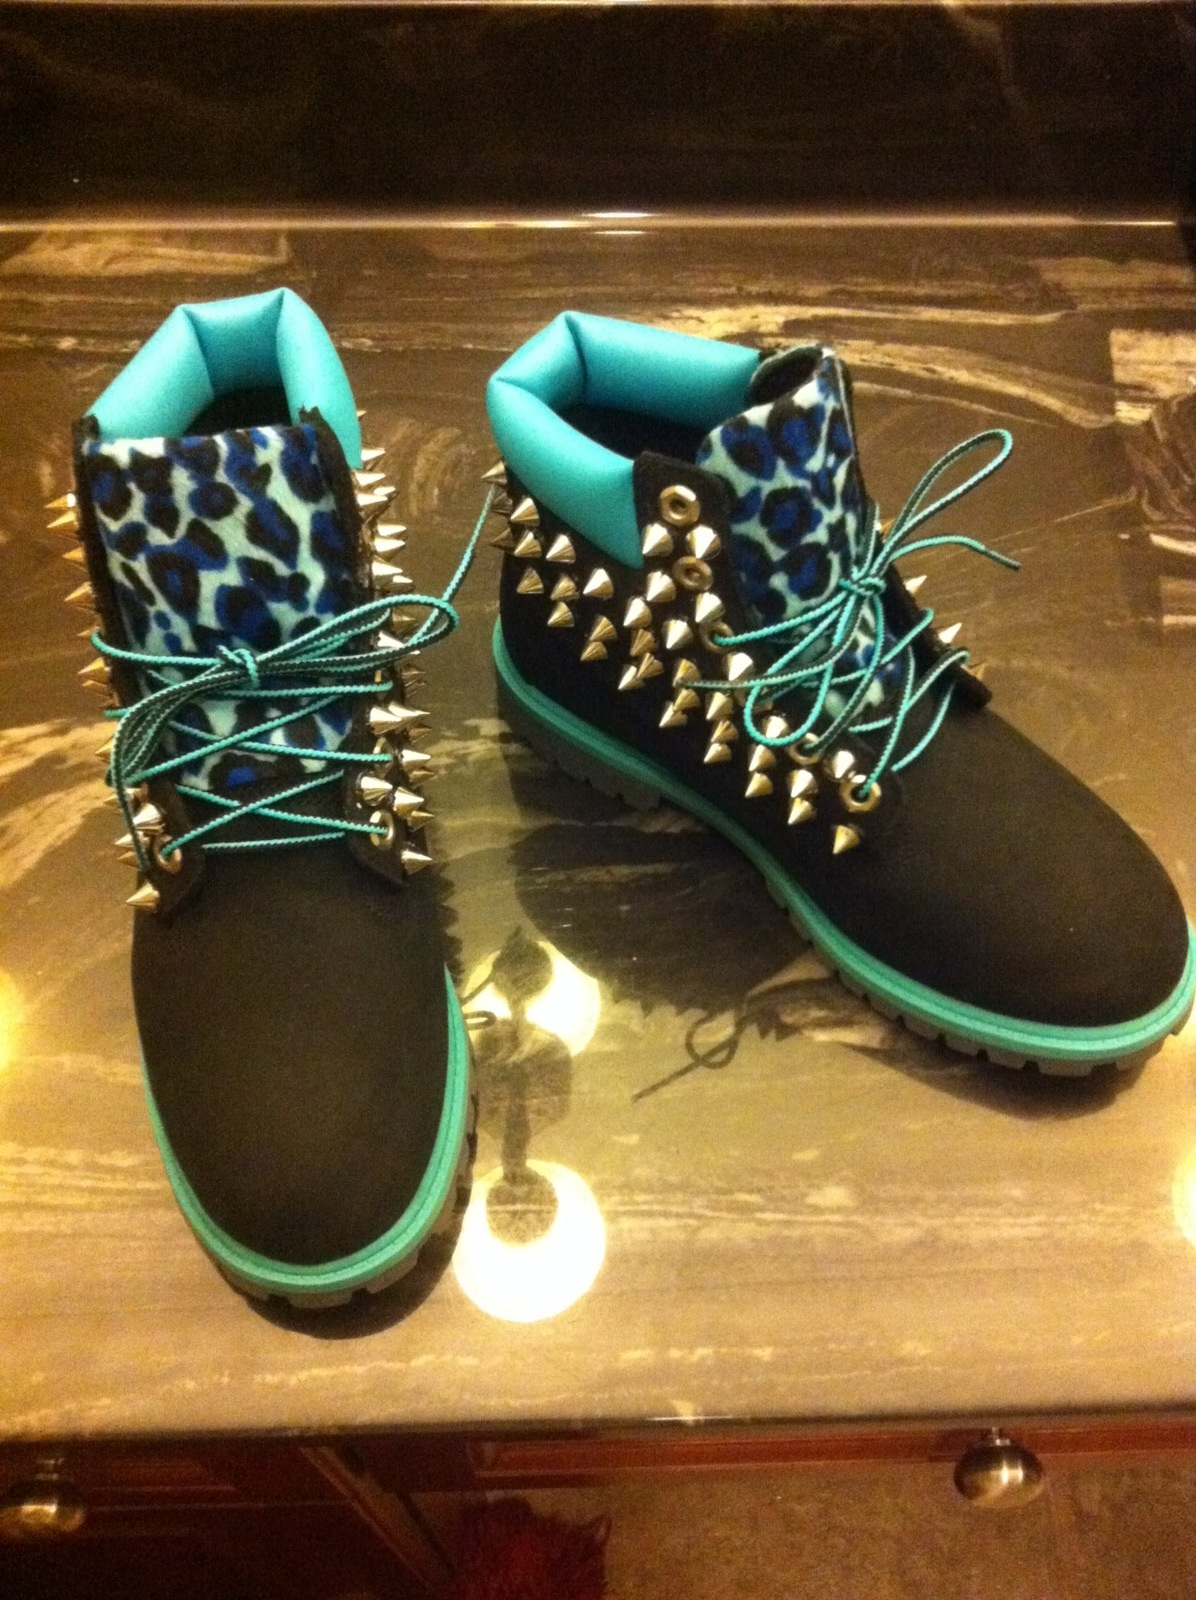 Turquoise/black leopard spiked timberland (junior sizes 3.5